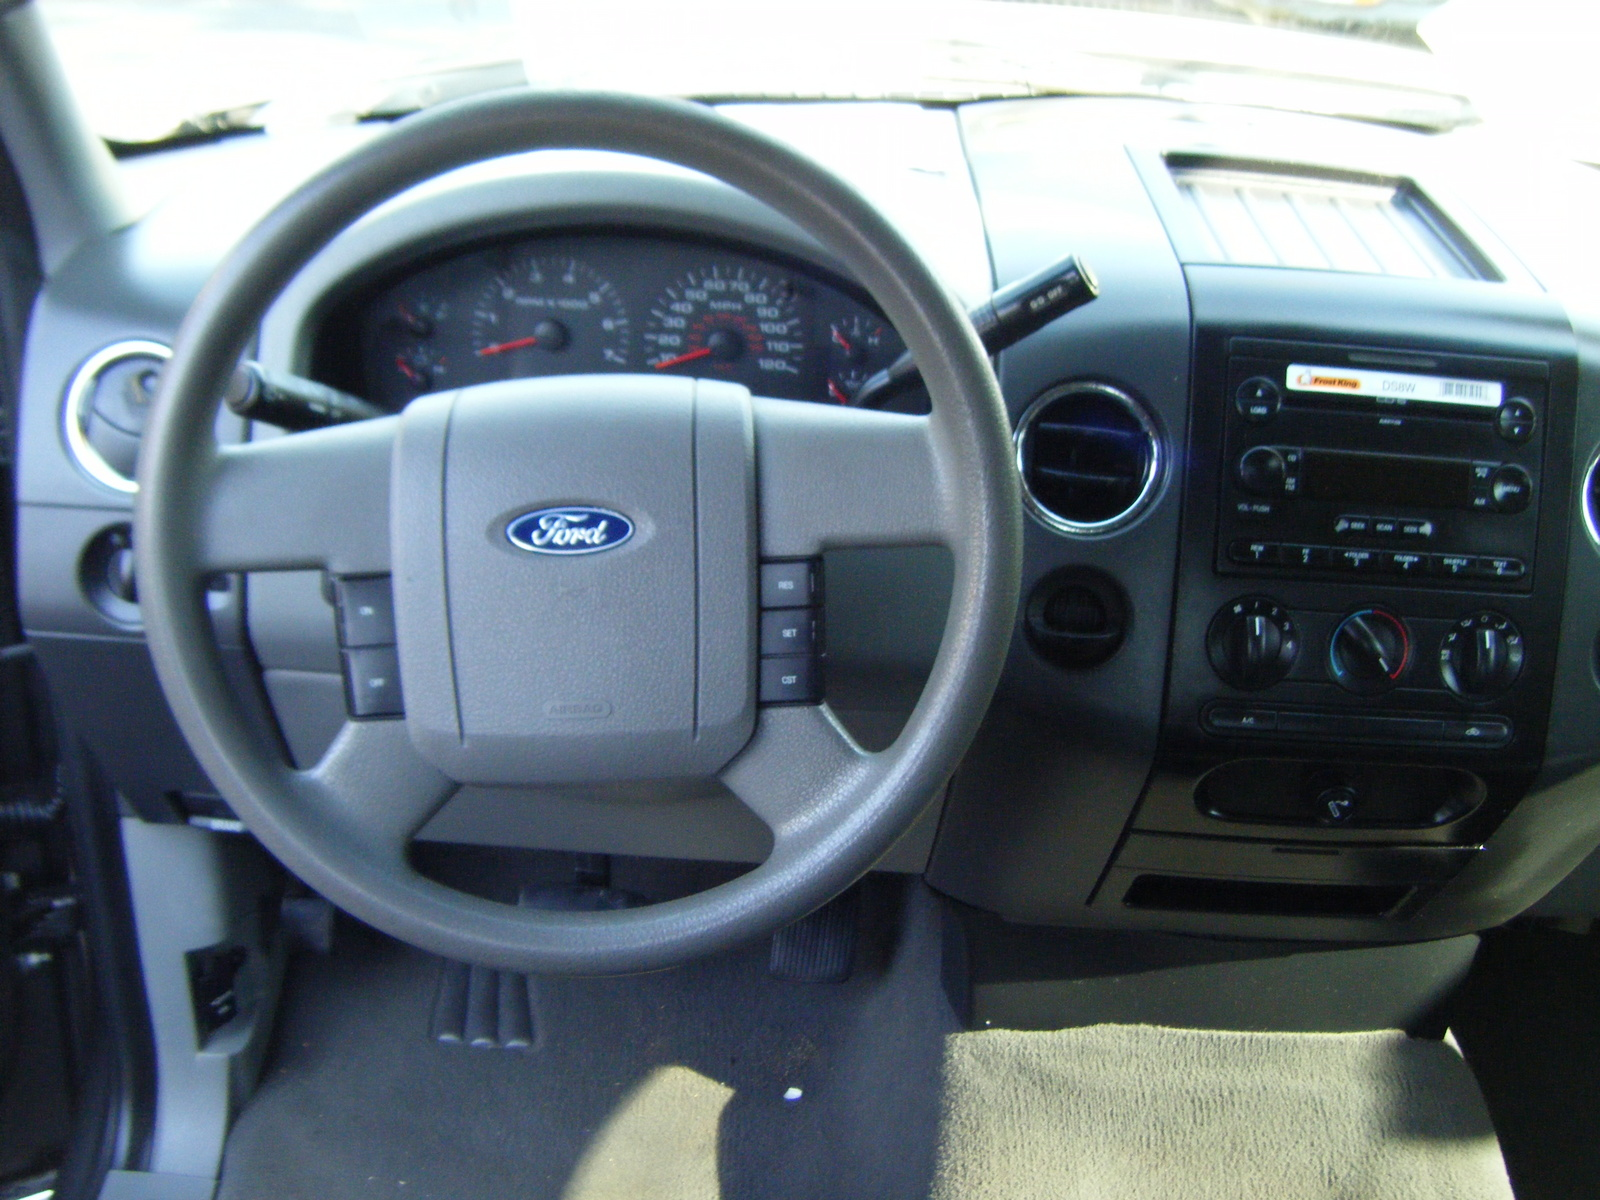 2006 ford f 150 interior pictures cargurus. Black Bedroom Furniture Sets. Home Design Ideas